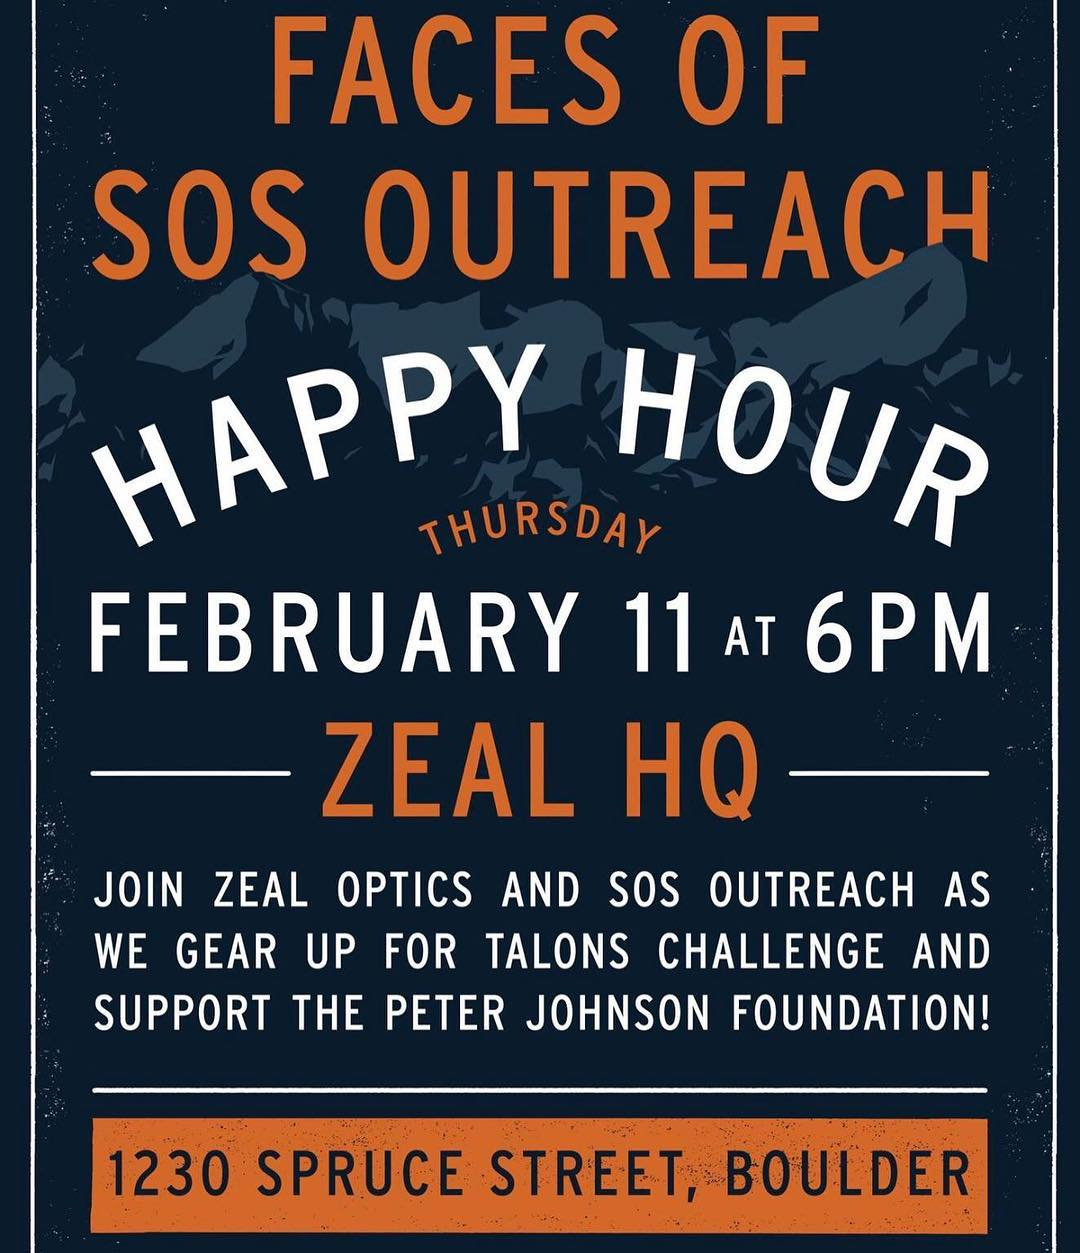 Can't wait til 6 pm as we unveil the #FacesofSOS to our #Boulder community! Swing by @zealoptics and help us raise support for #sosoutreach #youth programs and #inspireyouth • Extra perks? Brewskis compliments of our friends at @upslope and killer...